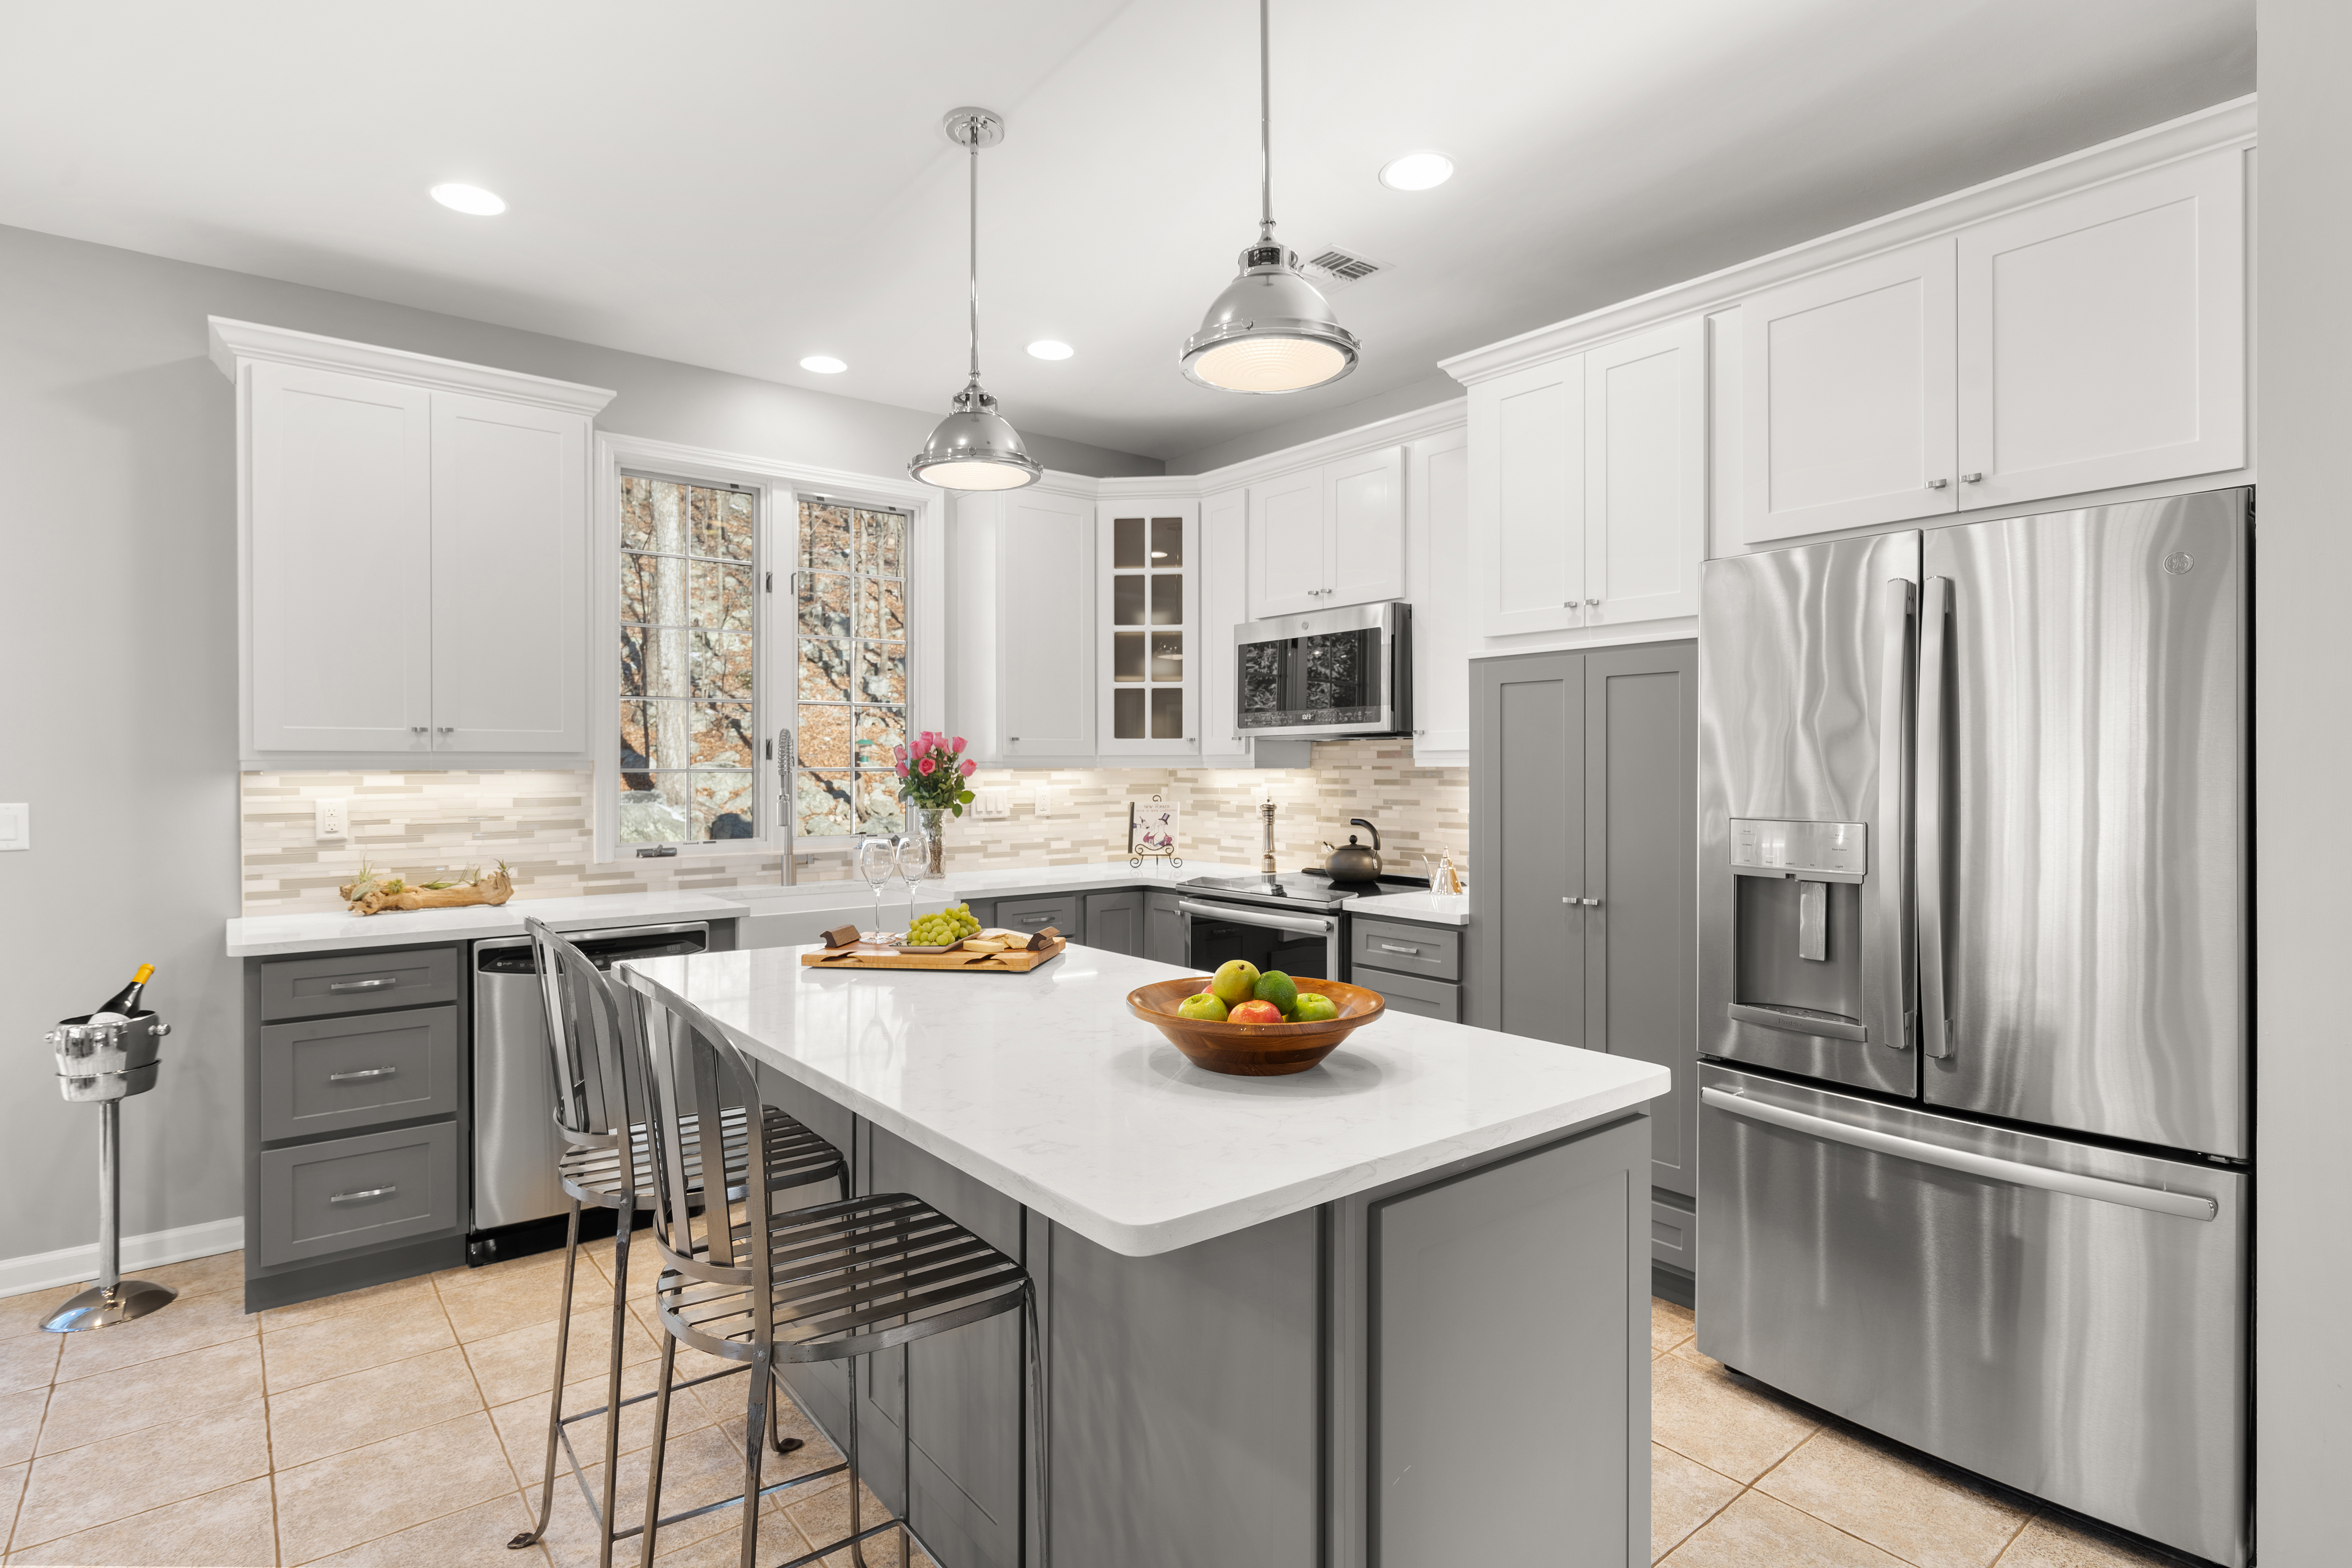 Kitchen Magic How To Save Money On Your Remodel